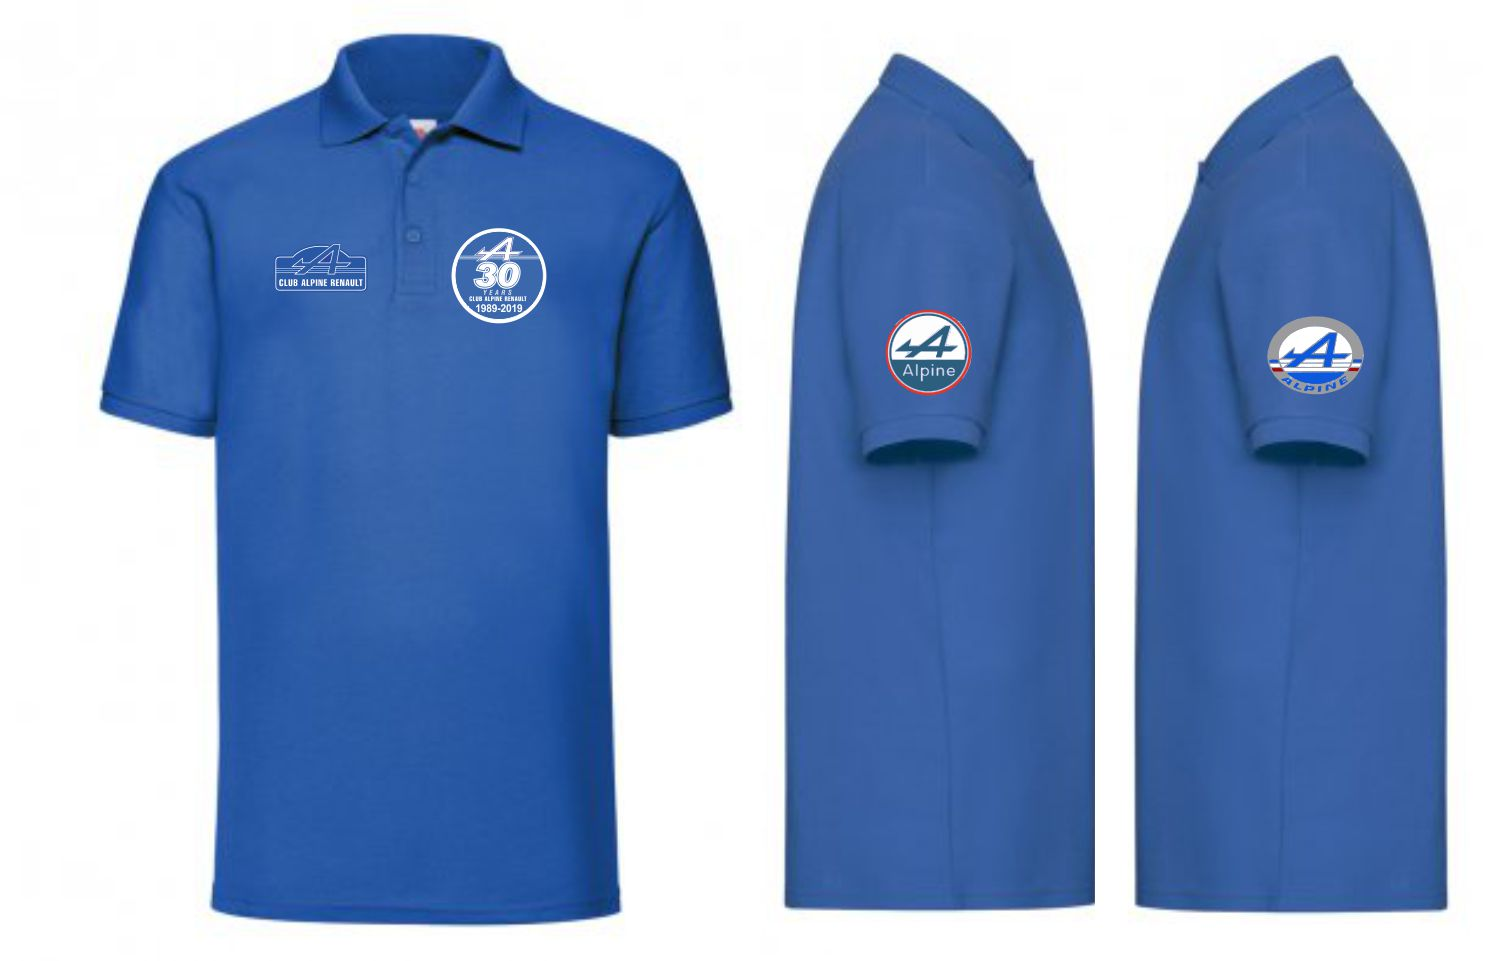 Alpine Renault 30th Anniversary Lady Fit polo shirt